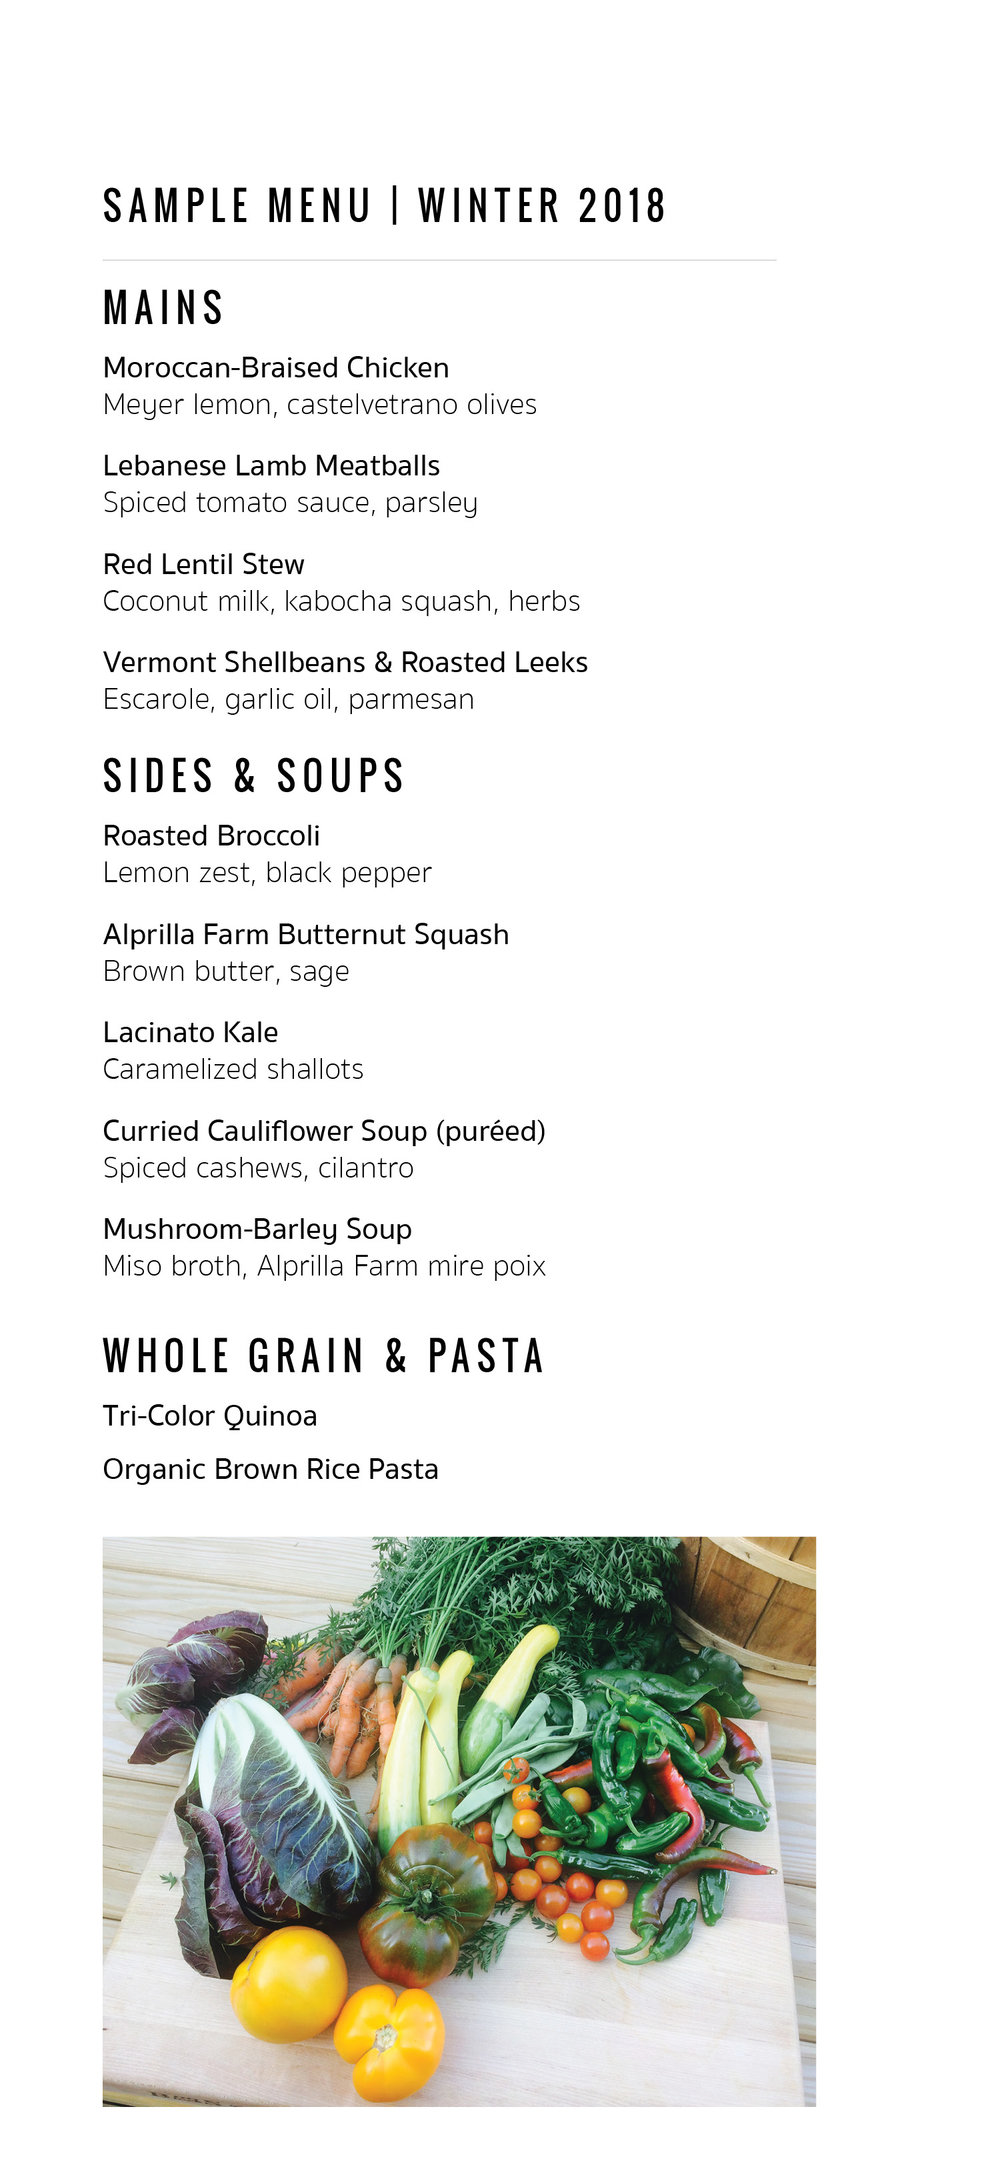 How it Works - Contigo Kitchen offers organic seasonal meal delivery subscriptions. The menu changes weekly, and always emphasizes a healthful selection of mains, sides and soups so that you can mix and match. By default, our menus are mostly gluten free,limit the use of dairy,and offer a variety of plant-based proteins.Many menu items can easily be customized to help make it easier to achieve your own wellness needs and goals.Each Friday a menu like this one is posted with a simple to use form. You've got 24 hours to submit your order online, and meals are delivered to your home or work each Monday evening, between 4:30pm and 7:00pm. Clean containers are picked up with following week's delivery.We use oven/microwave-safe glass containers with BPA-free lids. A refundable container deposit of $150 is due upon first delivery.Meals simply need to be reheated, dressed or garnished. A healthful dinner can be on the table in five minutes (really!). For any pickle little ones in your family, very simple kid-friendly additions are available.Weekly Pricing*Six Meals | $195Eight Meals | $225Ten Meals | $255First Time Trial Meal: Four servings | $65*Individual meals are typically comprised of a main plus two different sides. Subscribers can opt out of up to two weekly orders each subscription.